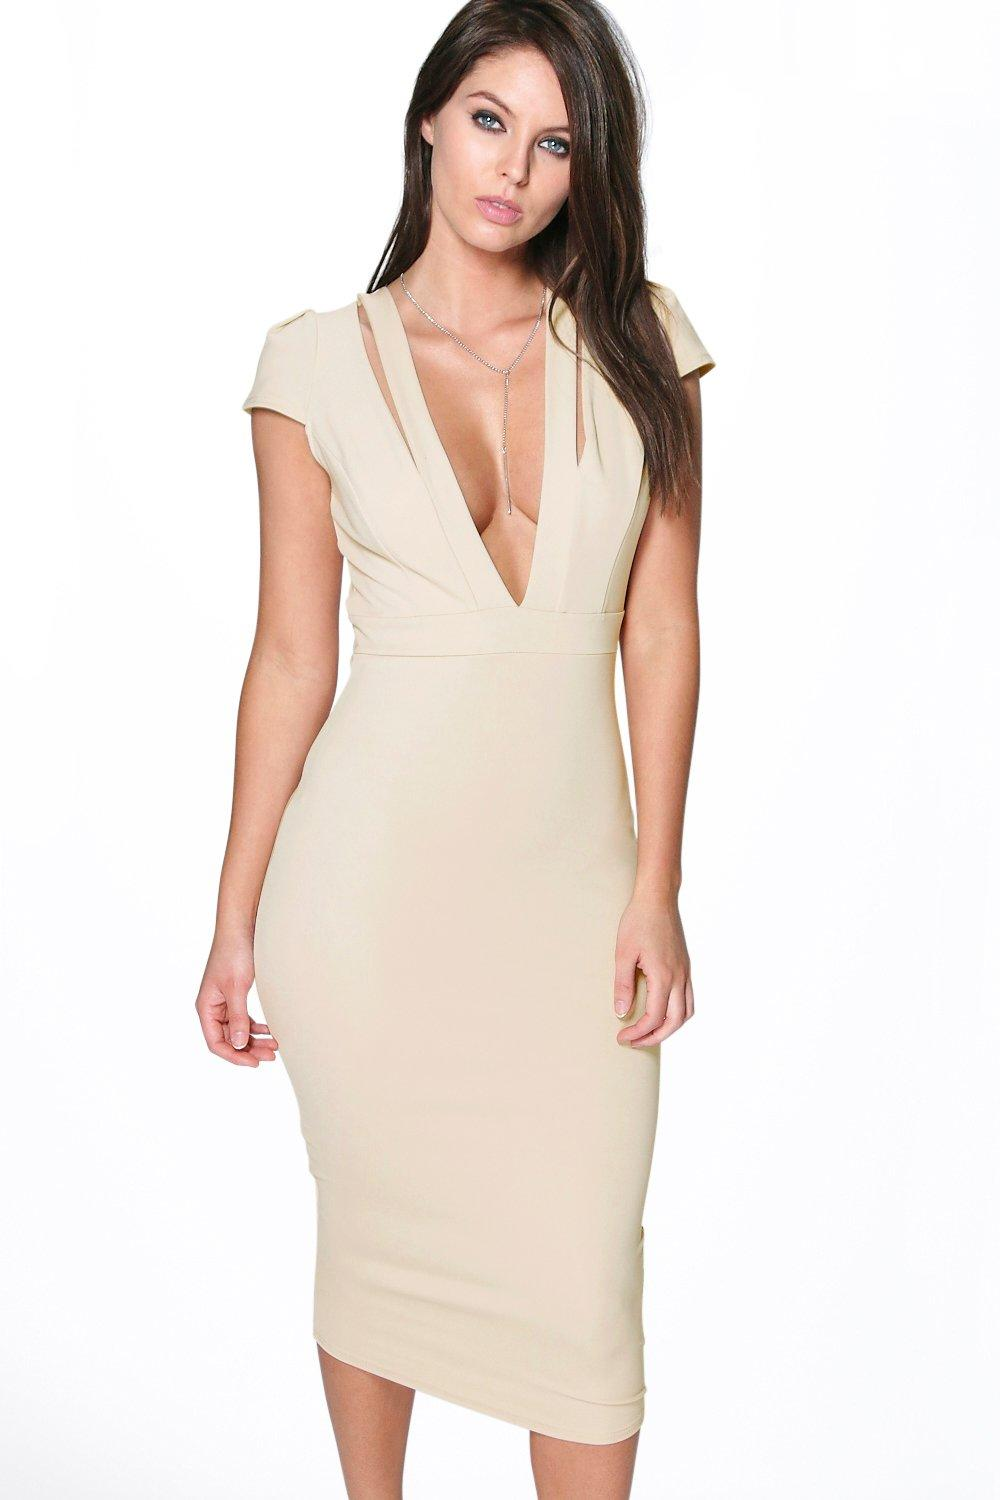 Holly Plunge Neck Cap Sleeve Midi Dress